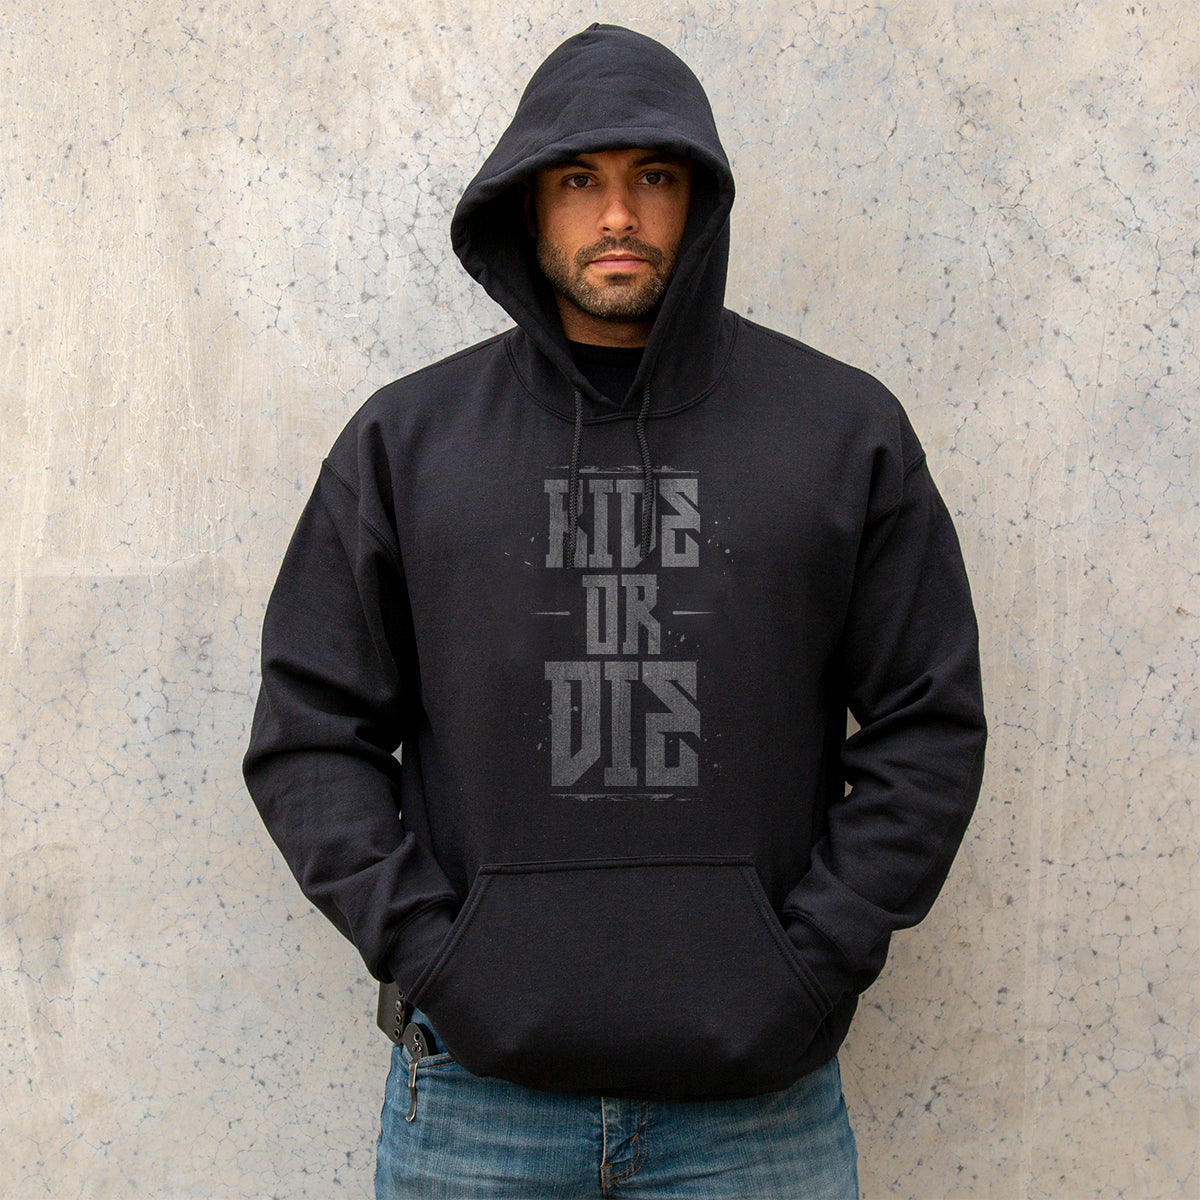 Ride or Die Hoodie - Small - Hoodies - Pipe Hitters Union